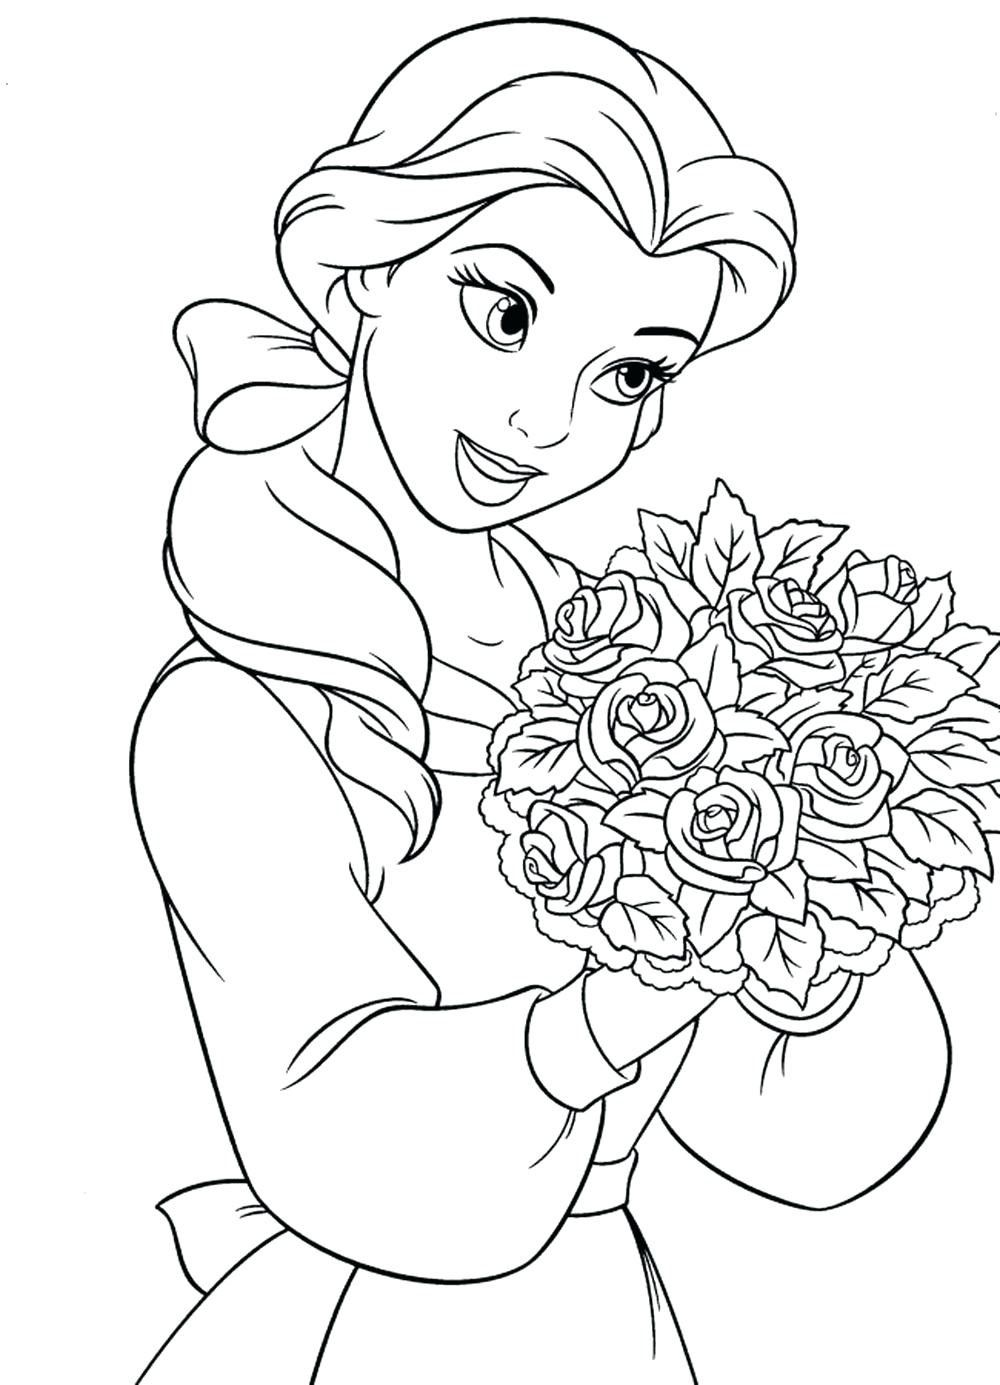 Free Printable Coloring Pages For Kids Princess